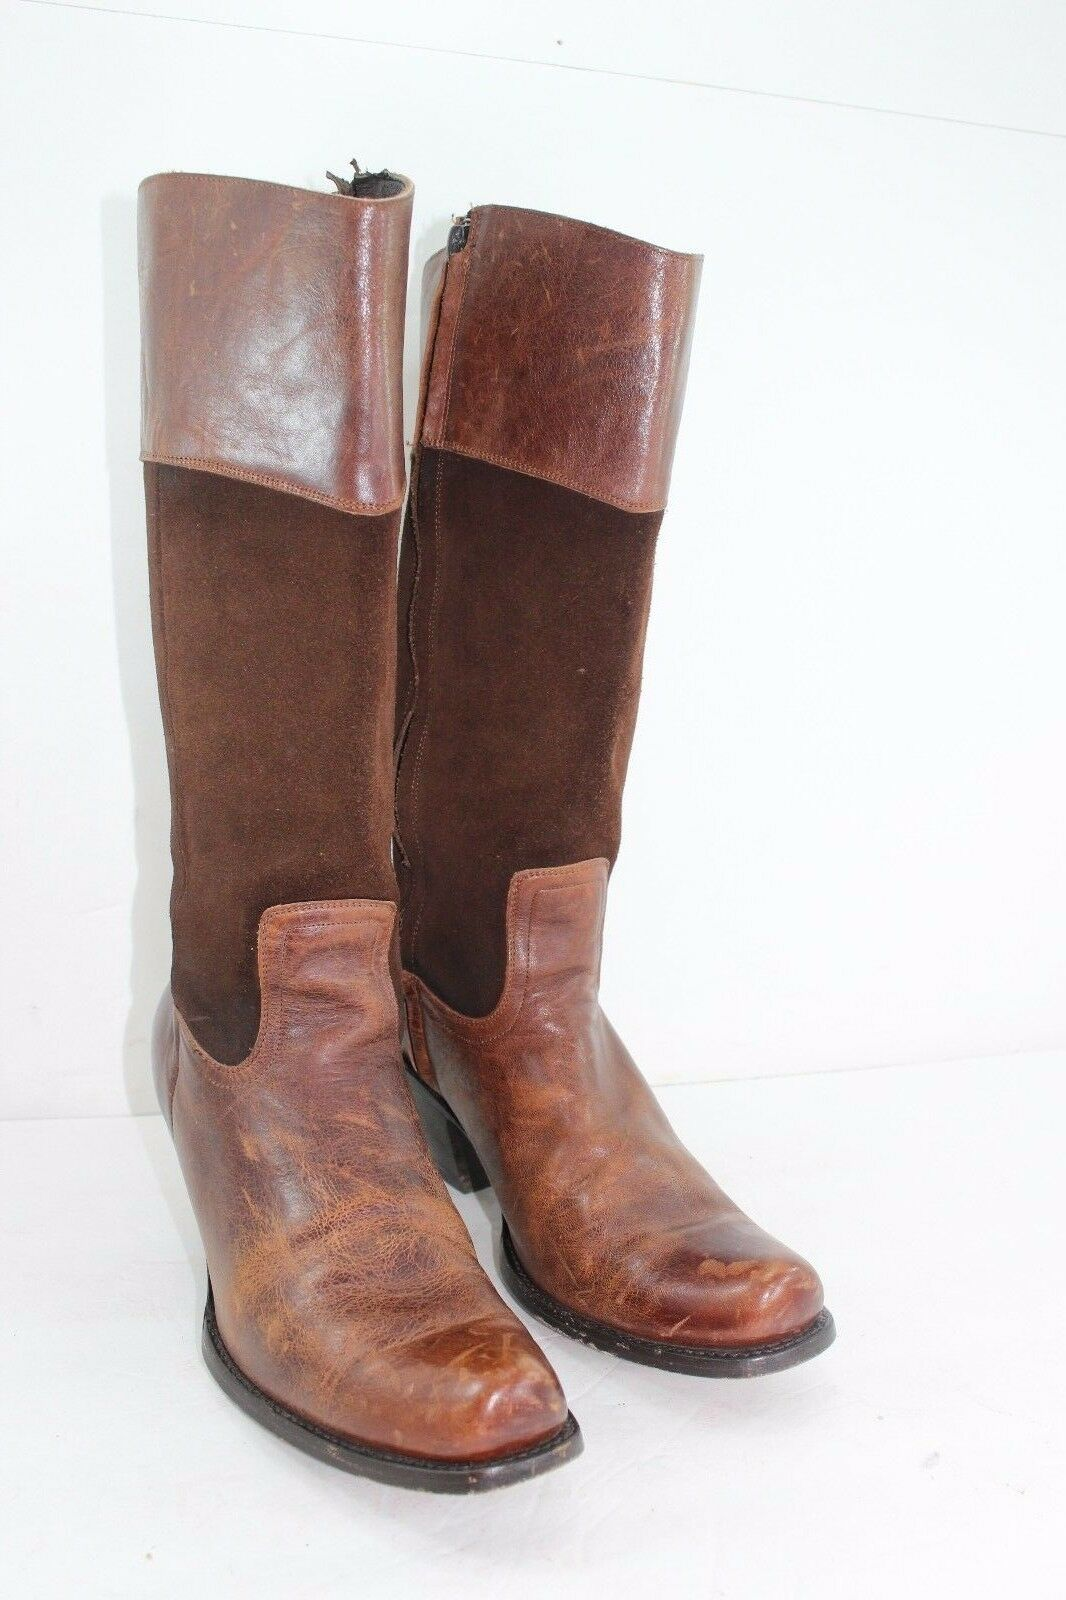 DOUBLE HH SONARA WOMENS BOOTS SIZE 9 M BROWNS IN GREAT CONDITION